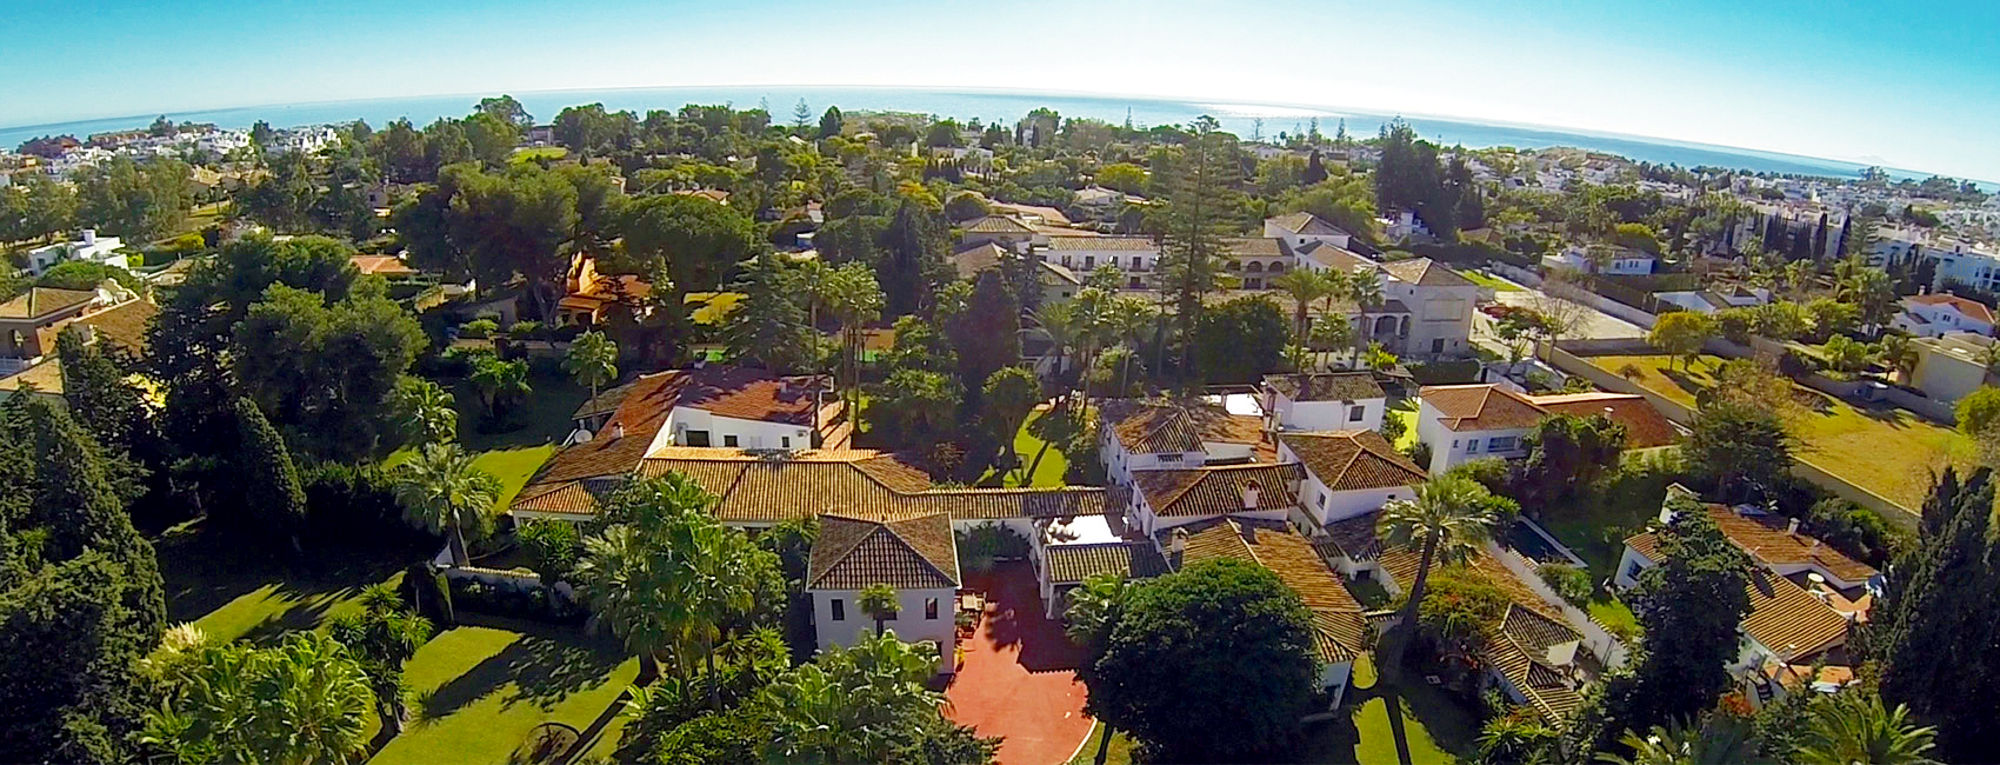 Drug Rehab Center in Marbella - Aerial View